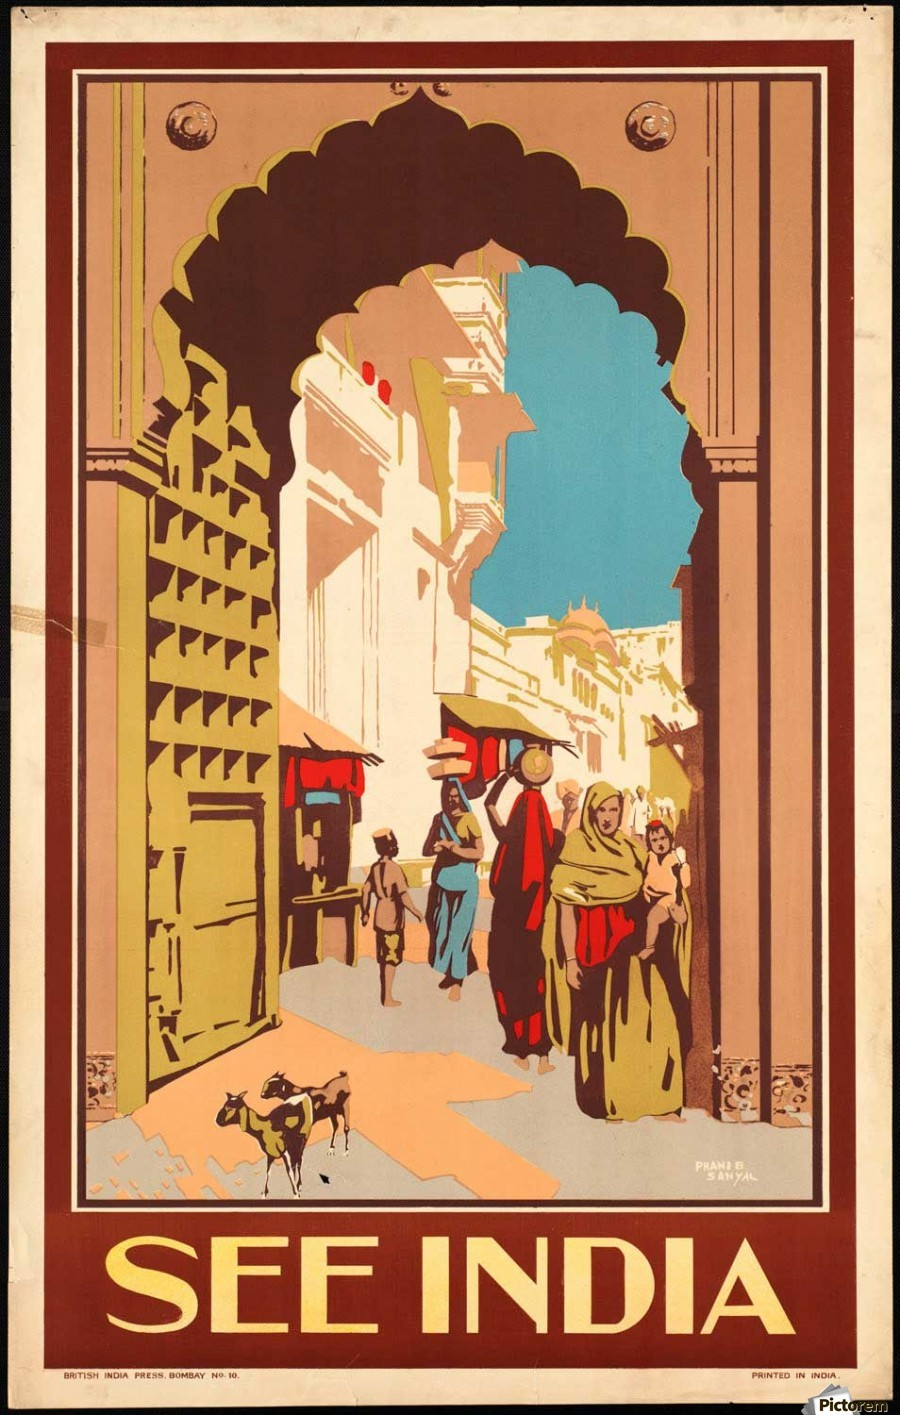 Visit India Vintage Travel Poster Print on Paper or Canvas Giclee Poster